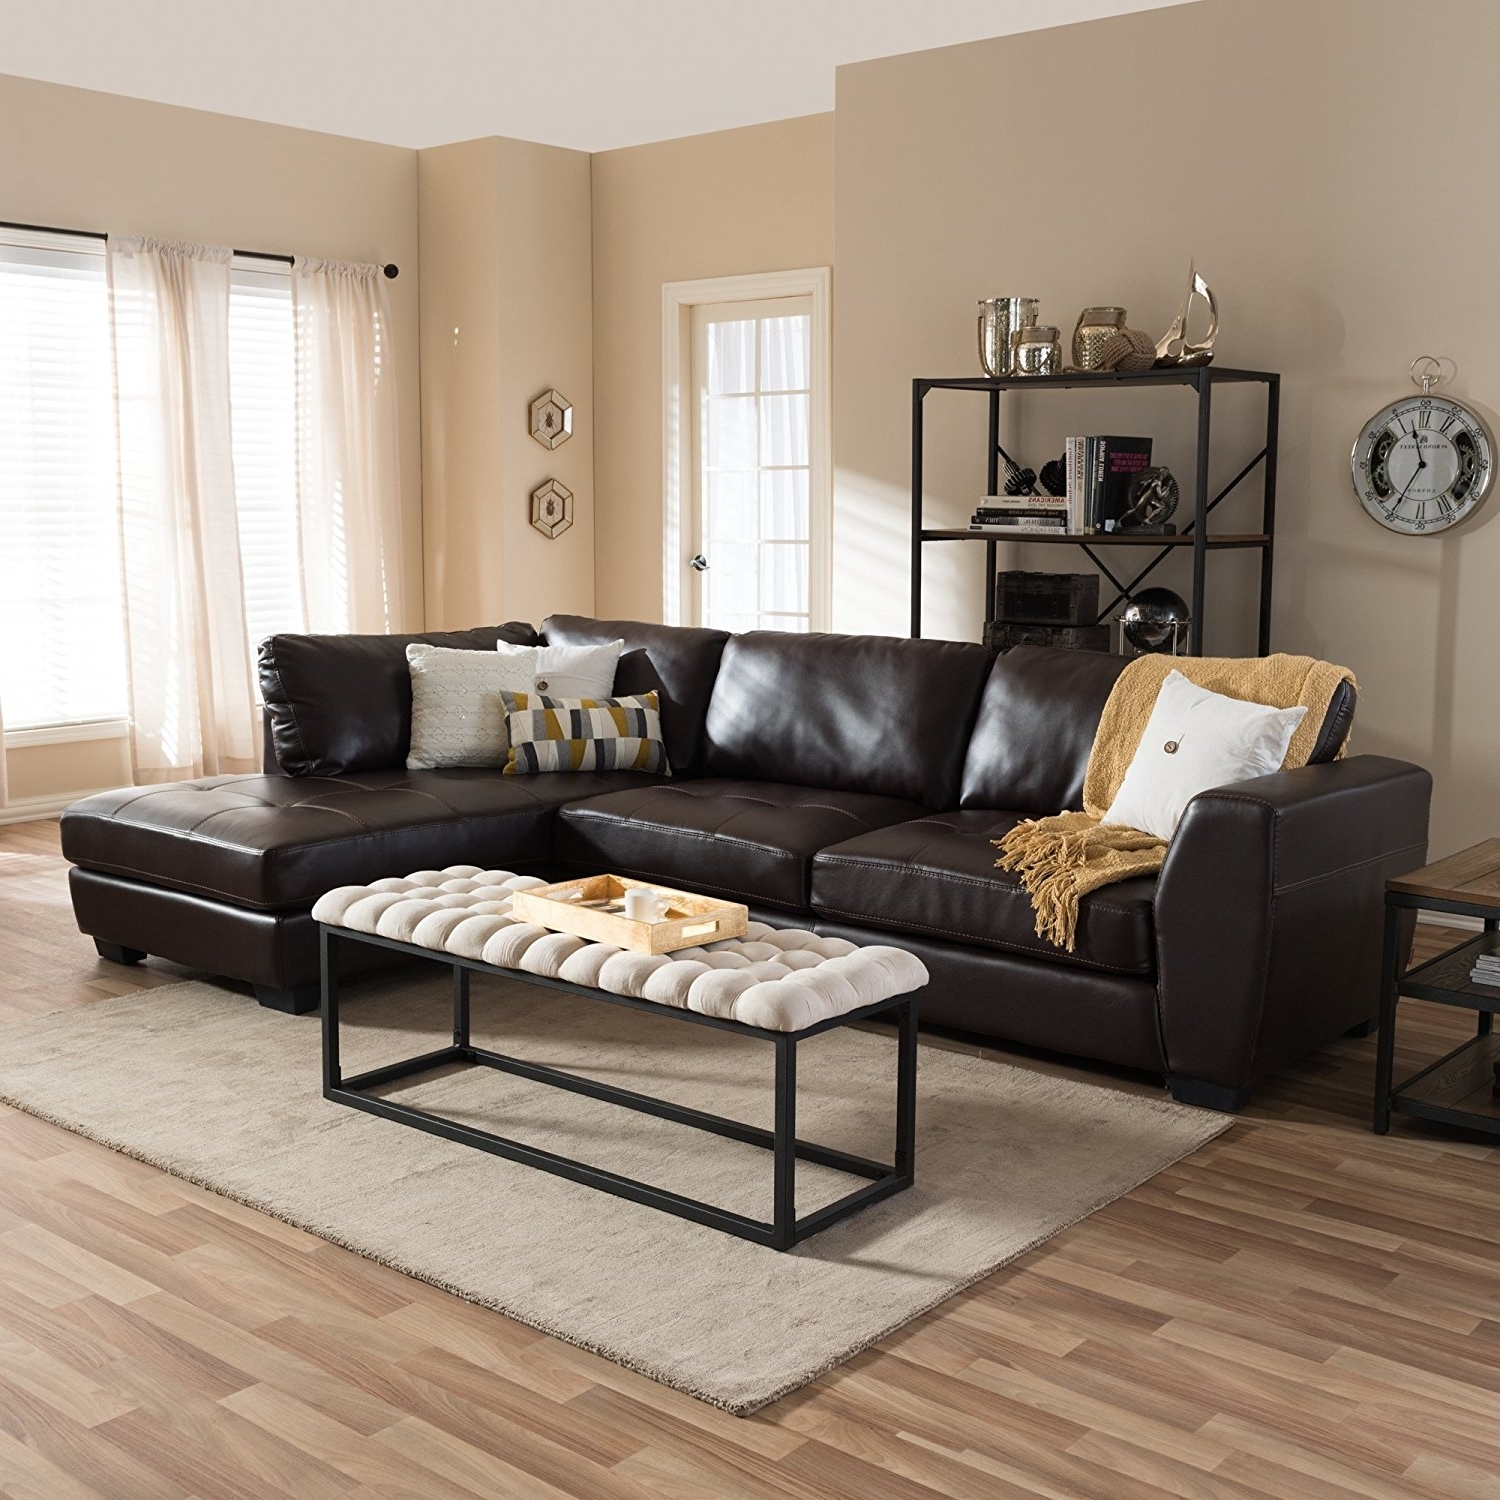 Best And Newest Modern Sectional Sofas Design Ideas — Cabinets, Beds, Sofas And Pertaining To Comfortable Sectional Sofas (View 6 of 20)